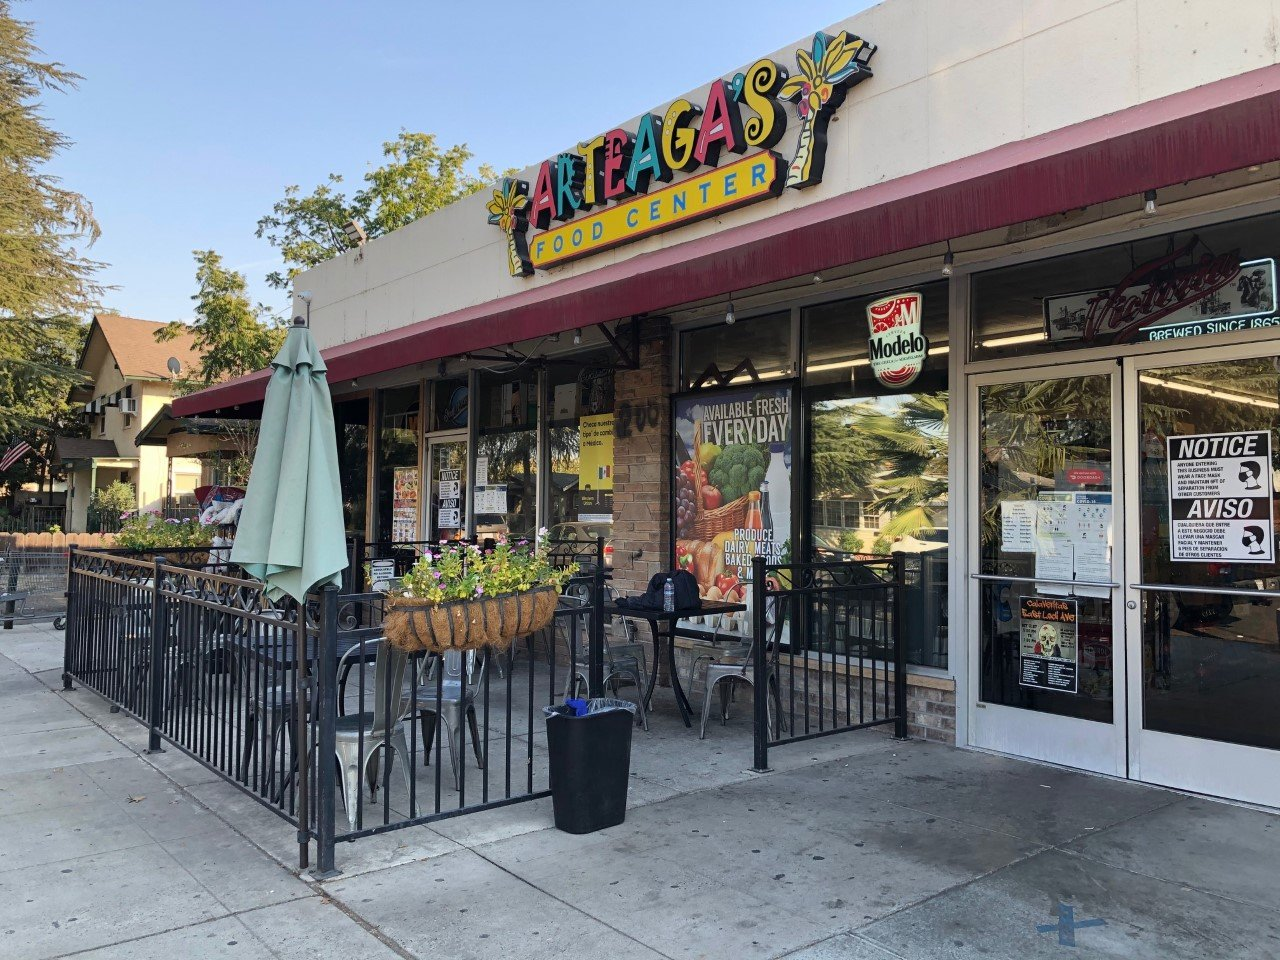 Storefront | Arteaga's Food Center | Mexican Grocery Store | Taqueria | Mexican Super Market